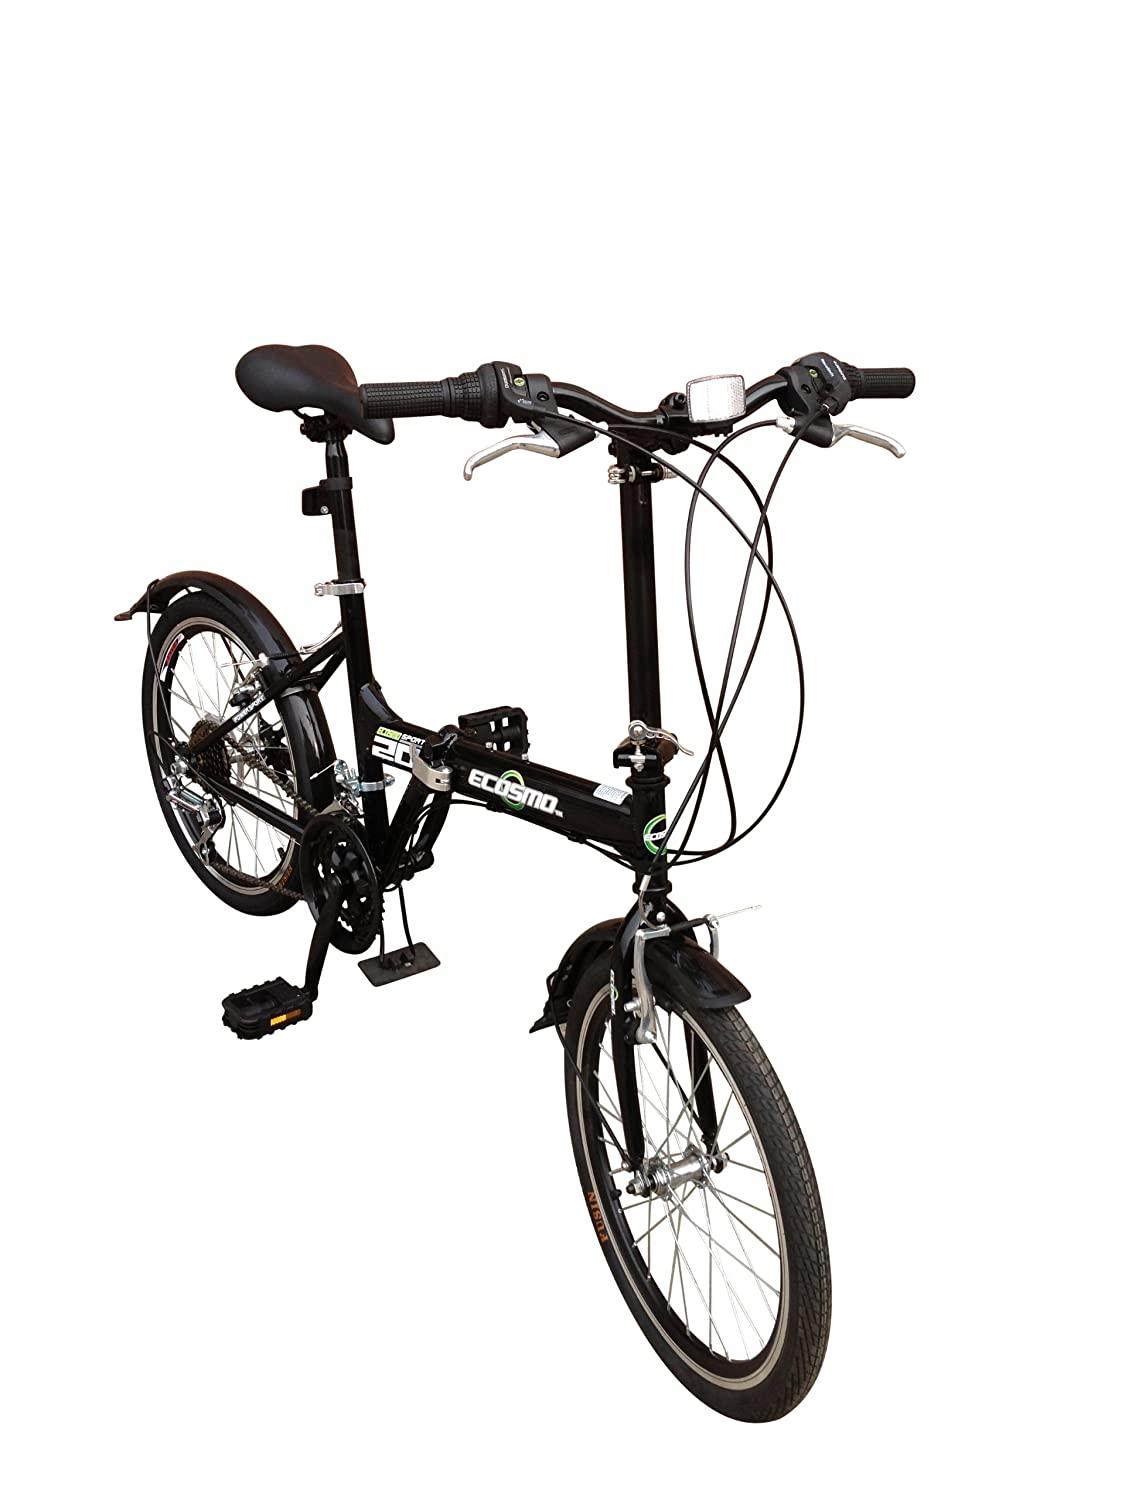 Ecosmo 20 brand new folding city bicycle bike 21sp 20f03bl amazon co uk sports outdoors